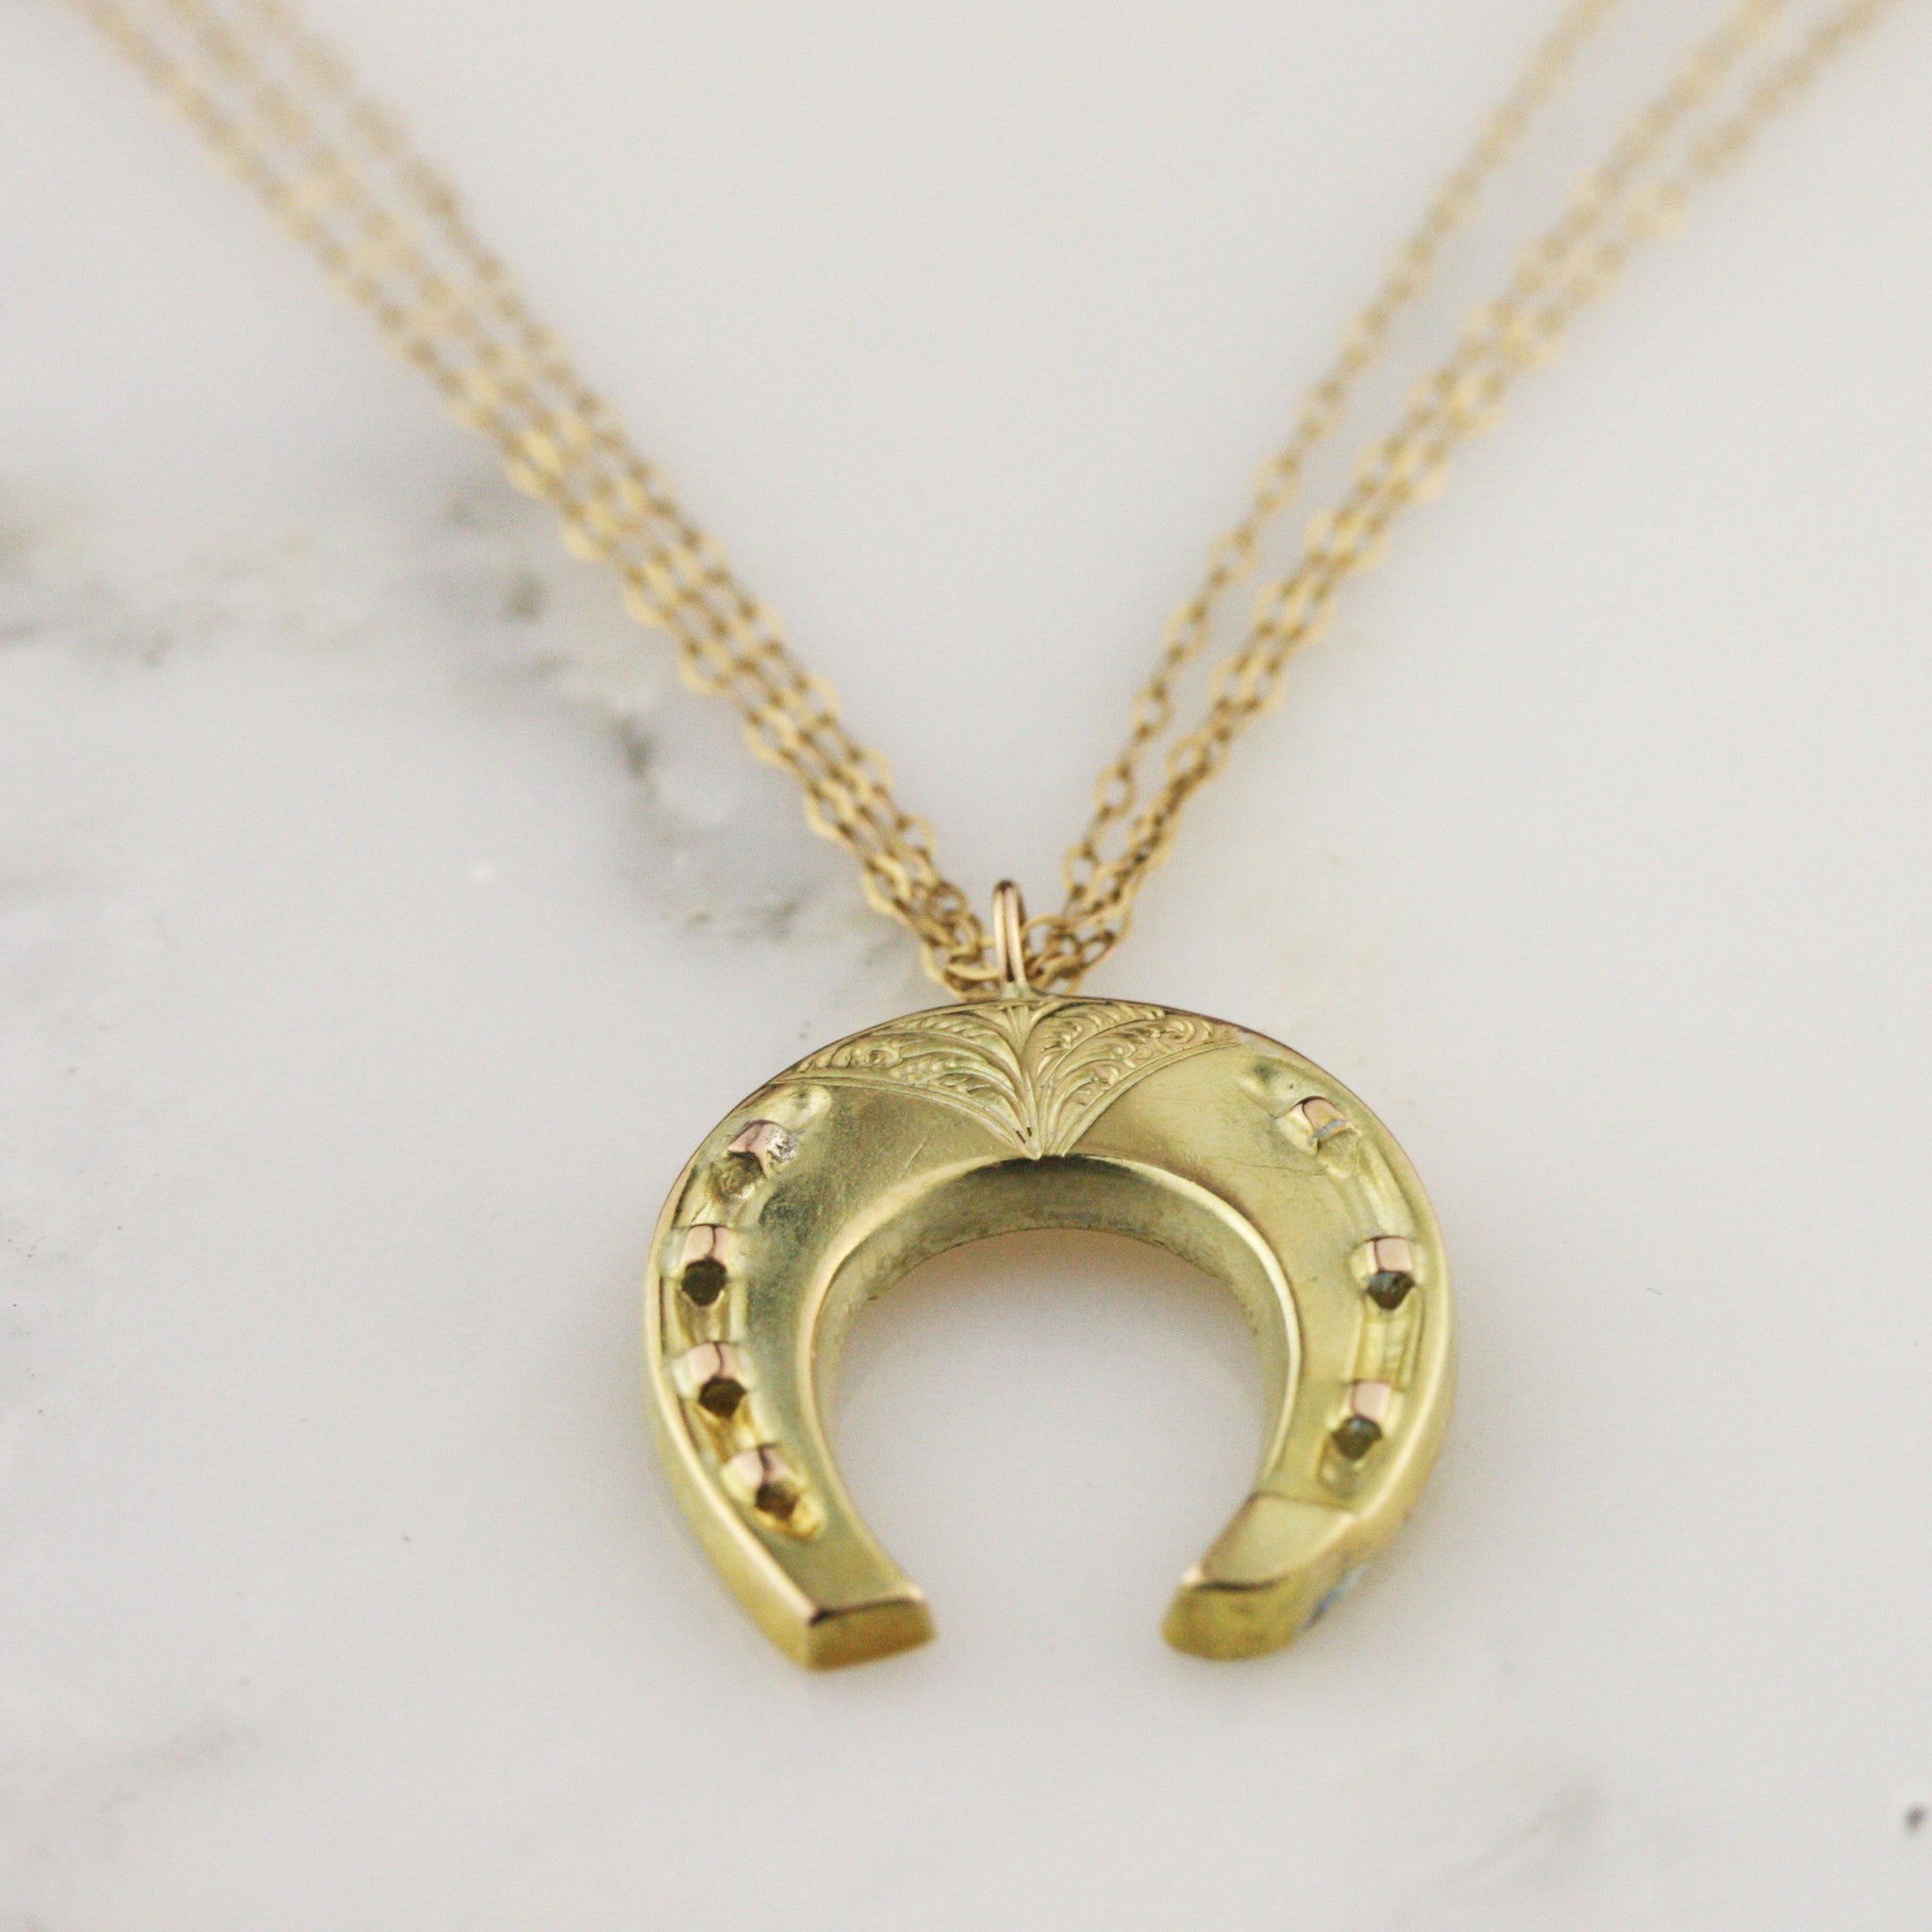 floating watches necklace yellow shipping gold pendant today zirconia jewelry cubic horseshoe product overstock free